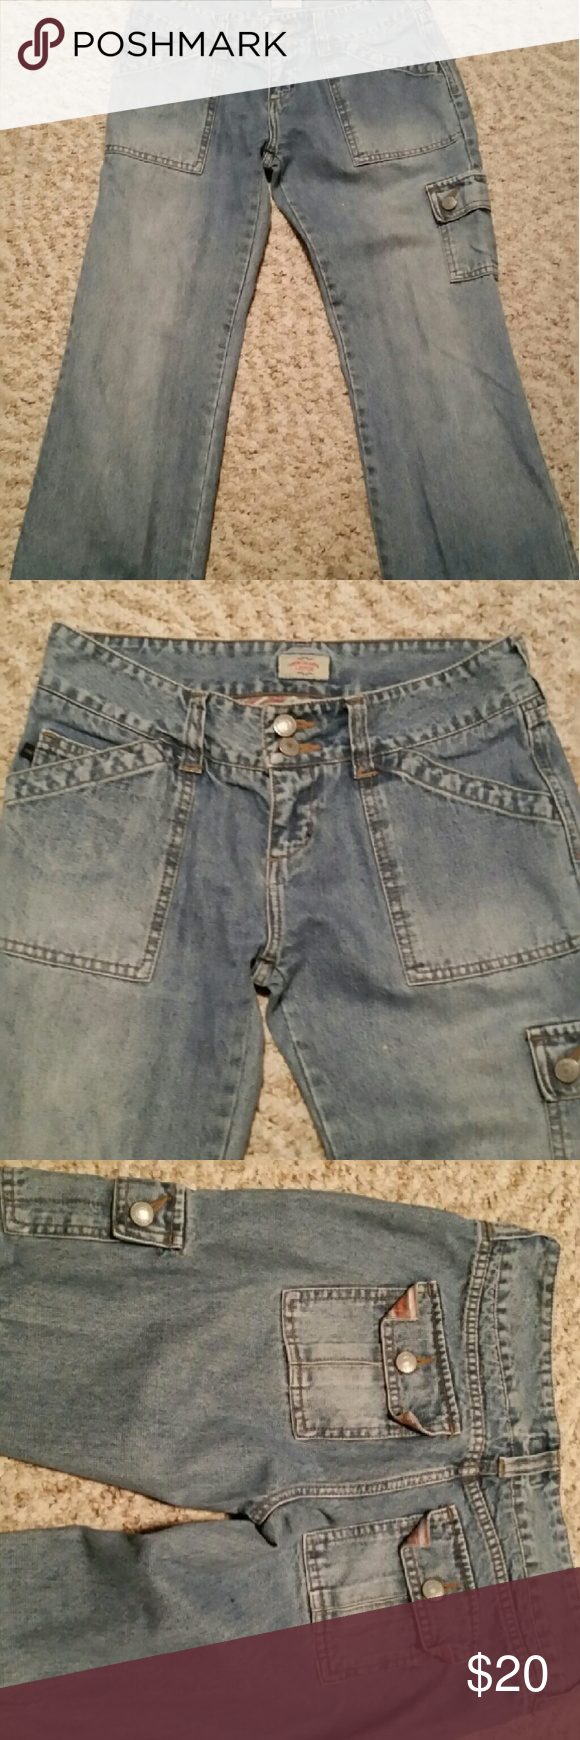 Jean Capri pants Light color jean Capri pants with back pockets. Great condition. Jeans Ankle & Cropped